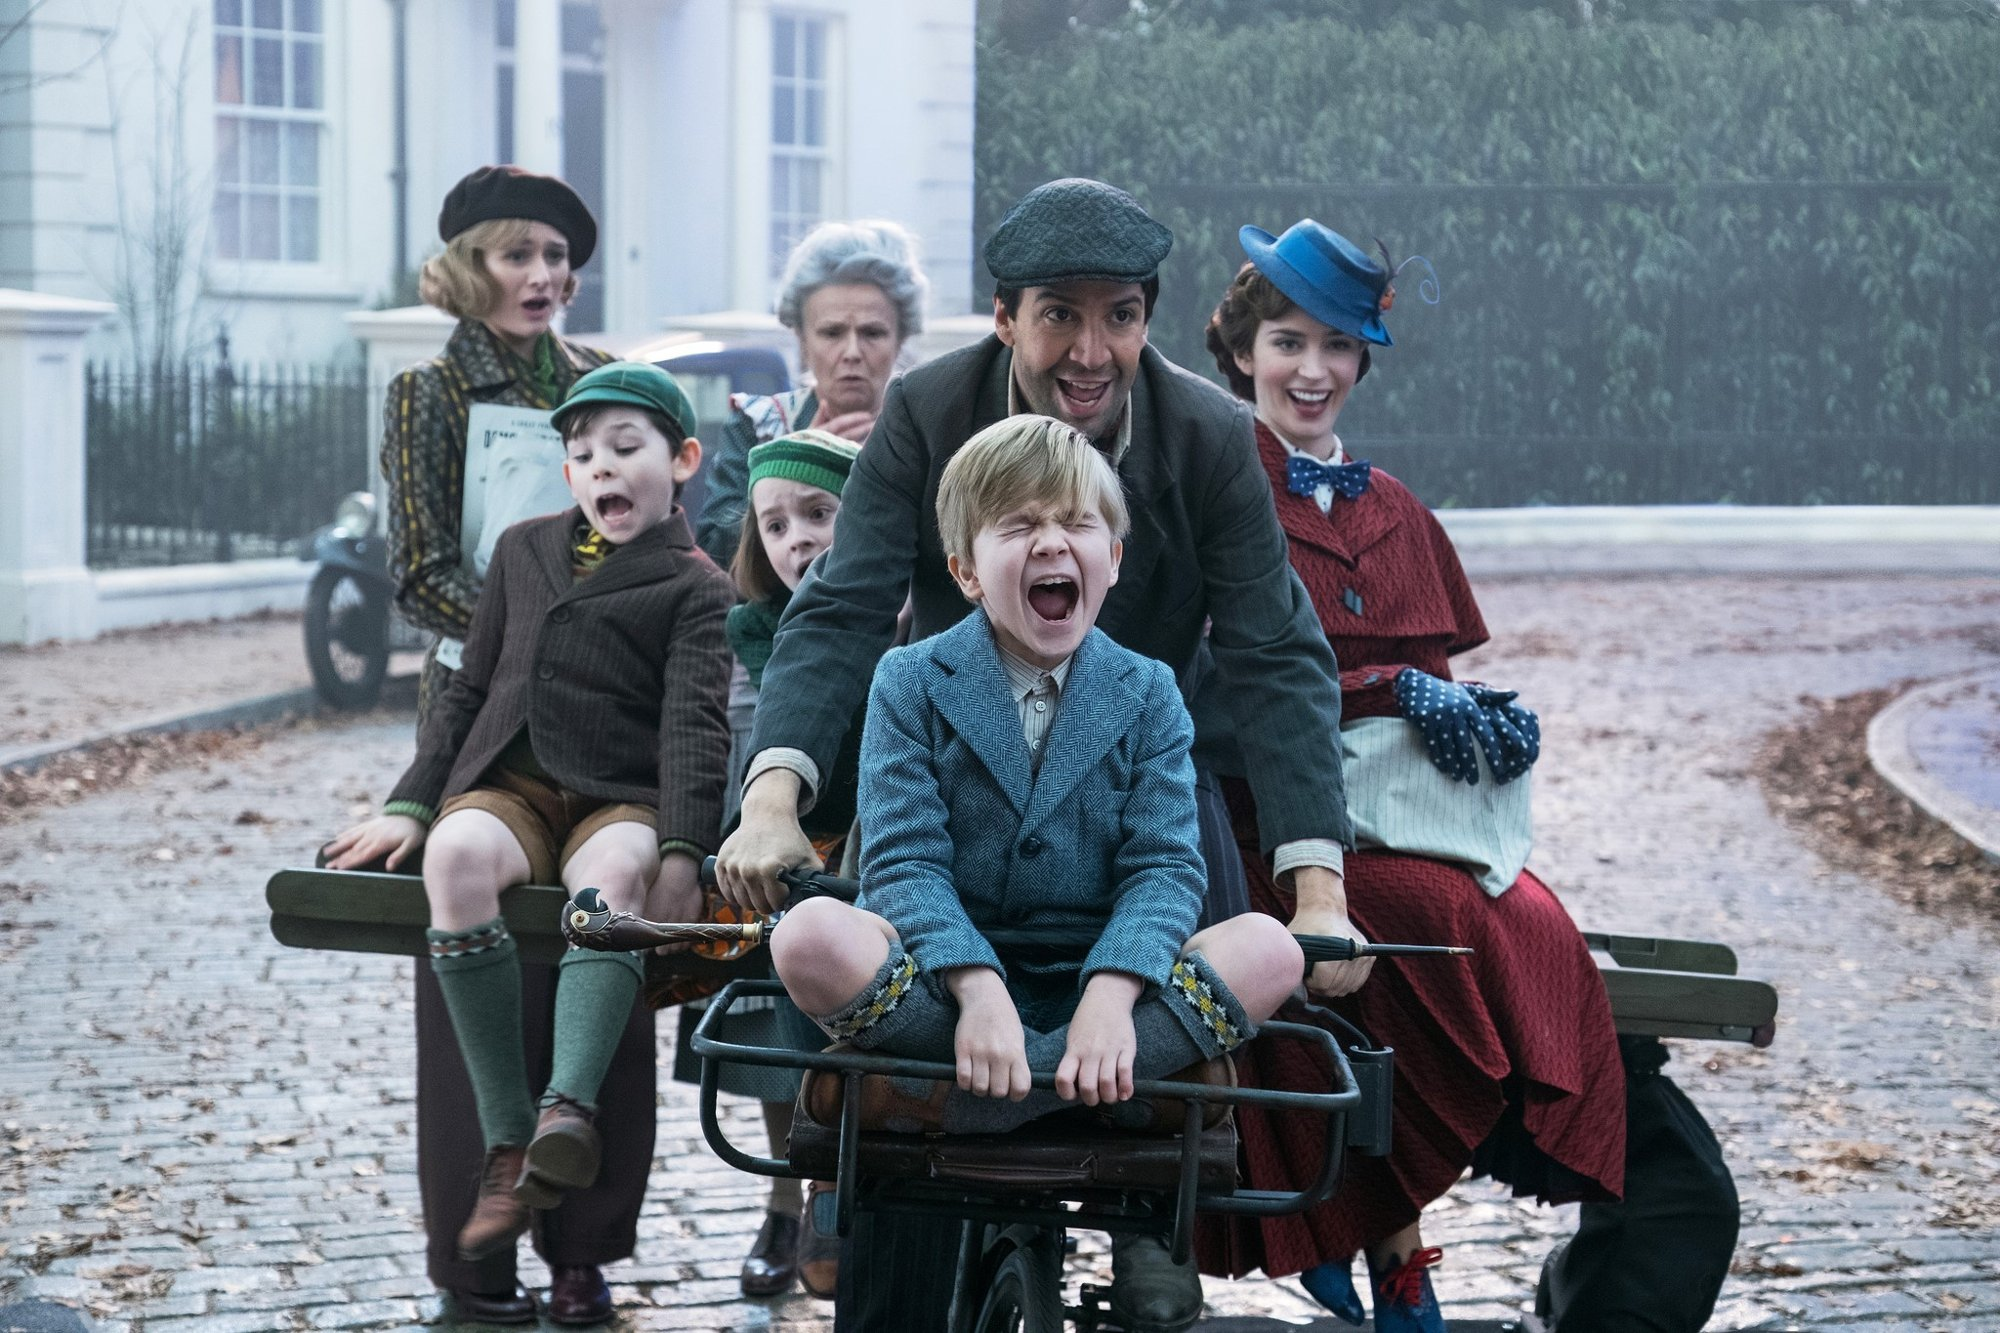 Emily Mortimer, Nathanael Saleh, Julie Walters, Pixie Davies, Joel Dawson, Lin-Manuel Miranda, and Emily Blunt in Walt Disney Pictures' Mary Poppins Returns (2018)